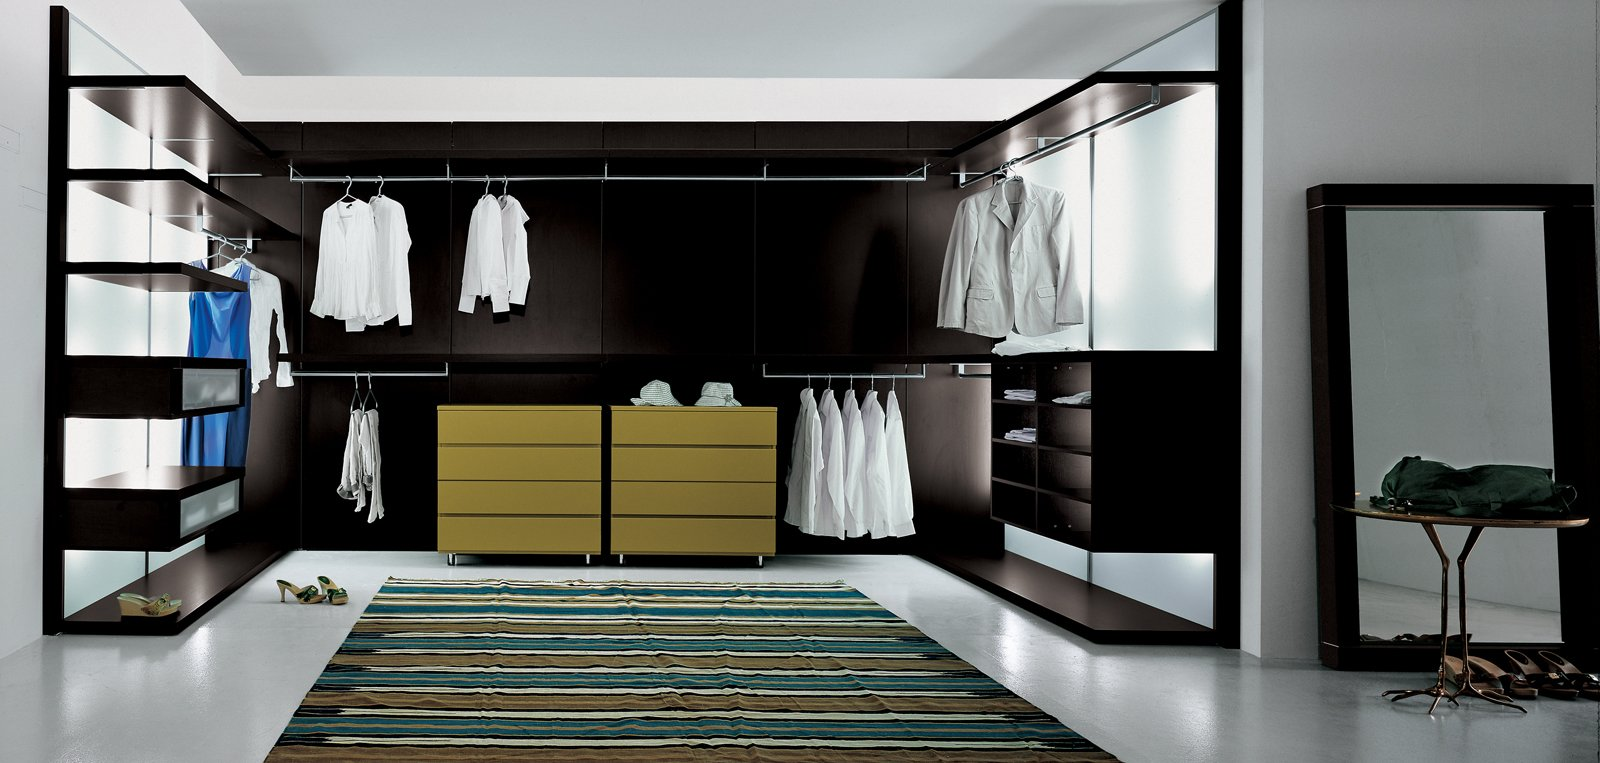 Anteprima by Pianca / pianca.it  Read our   Dwell Reports on closet systems from the June 2009 issue  Photo 9 of 10 in 10 Modern Walk-In Closets from More Closet Cases